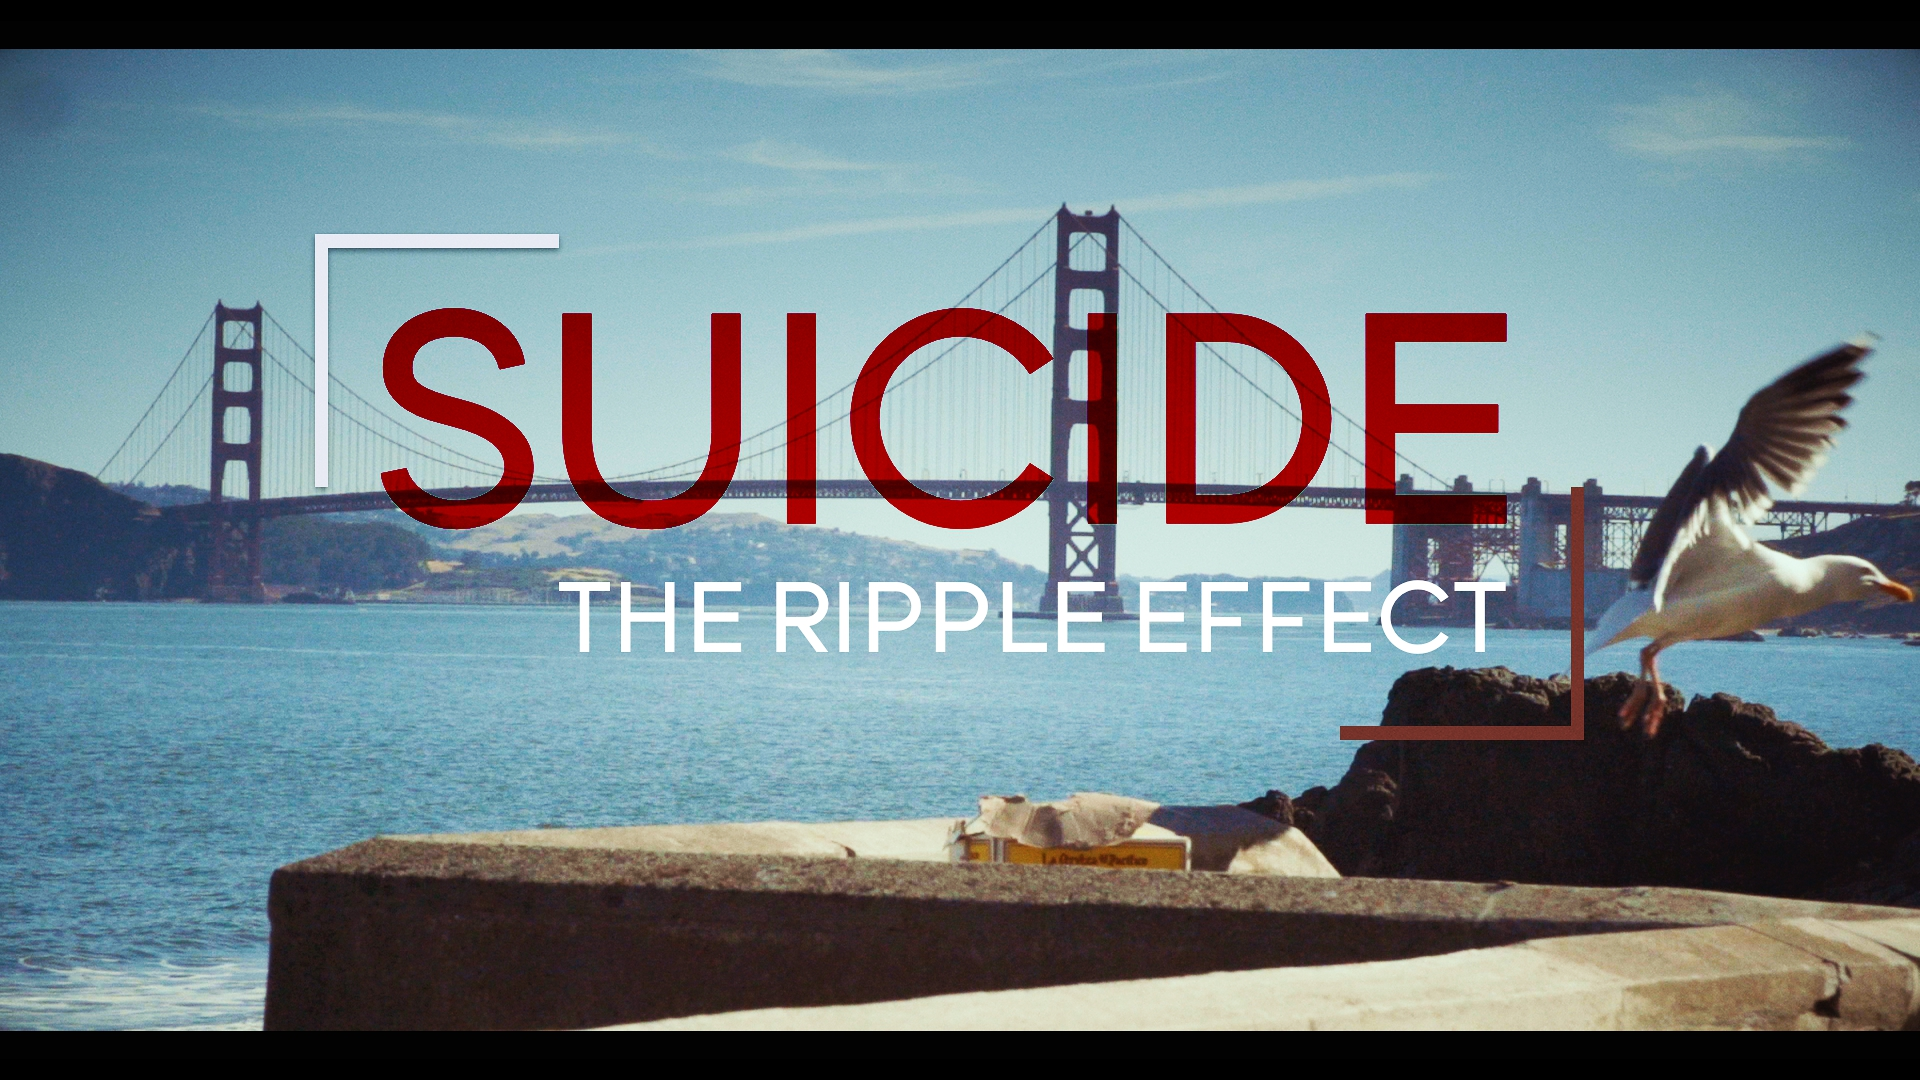 """DOCUMENTARY:SUICIDE THE RIPPLE EFFECT   """"Suicide: The Ripple Effect"""" is a feature length documentary film and MOVEMENT, currently in production,focusing on the devastating effects of suicide and the tremendous positive ripple effects of advocacy, inspiration and hope that are helping millions heal & stay alive.  The film highlights the journey of Kevin Hines, who at age 19, attempted to take his life by jumping from the Golden Gate Bridge.Today Kevin is a world-renowned mental health advocate, motivational speaker and author who travels the globe spreading a message of hope, recovery and wellness.  The film chronicles Kevin's personal journey and the ripple effect it has on those who have been impacted by his suicide attempt and his life's work since. In addition, the film highlights the stories of individuals and families who are utilizing their personal tragedy to bring hope and healing to others."""